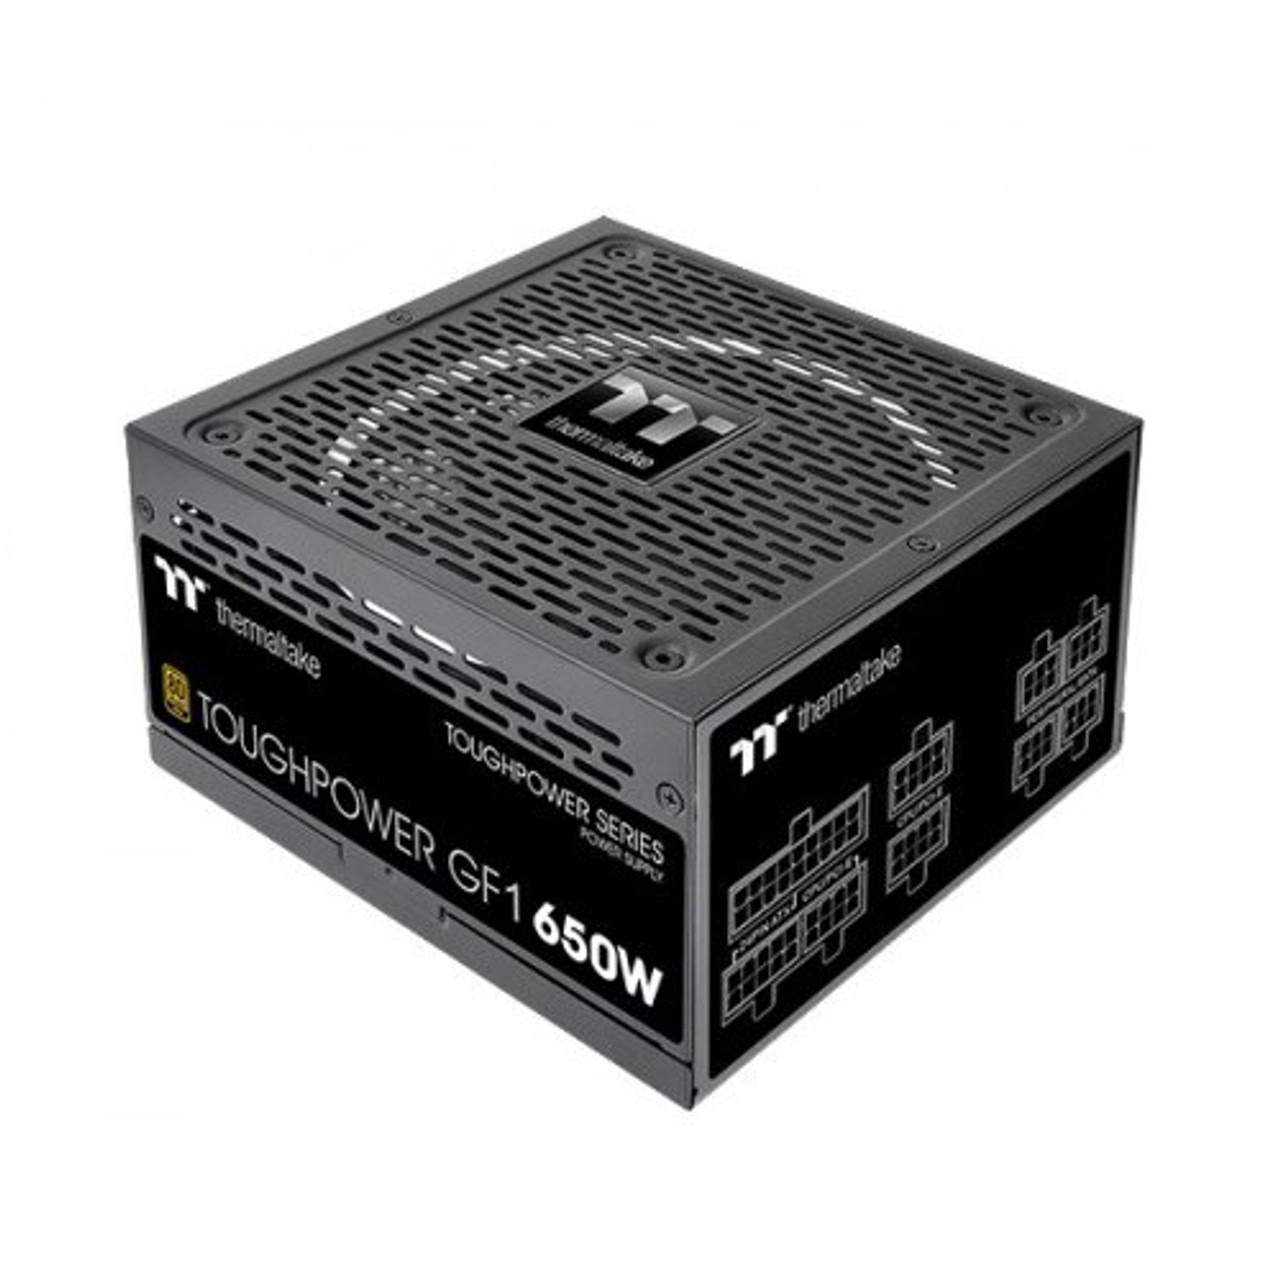 Image for Thermaltake Toughpower GF1 850W 80+ Gold Fully Modular Power Supply CX Computer Superstore